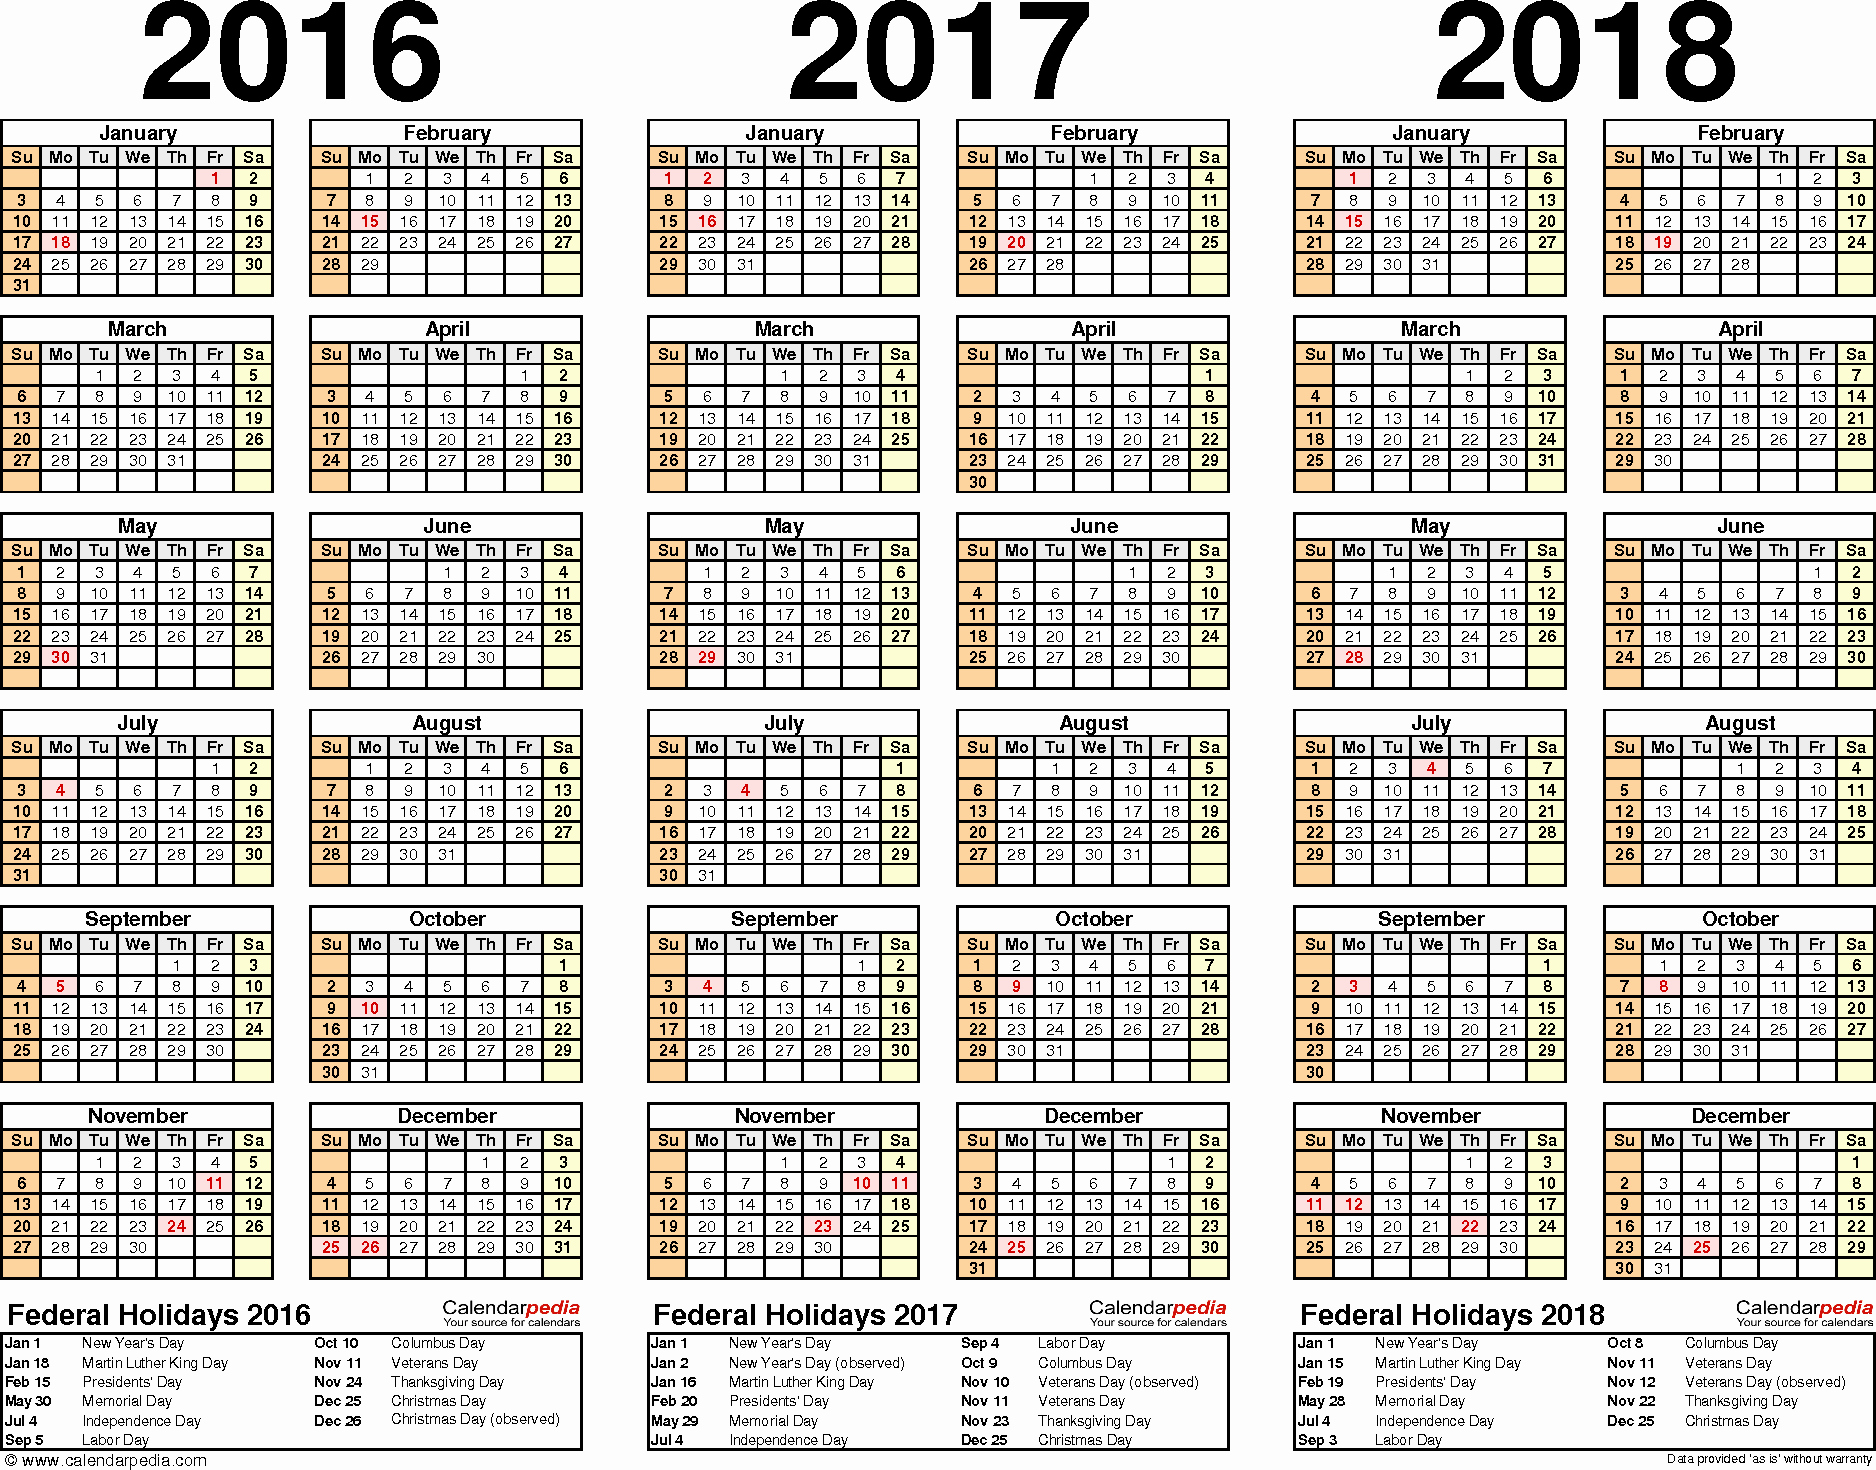 Monthly Calendar 2016-17 Elegant 2016 2017 2018 Calendar 4 Three Year Printable Pdf Calendars